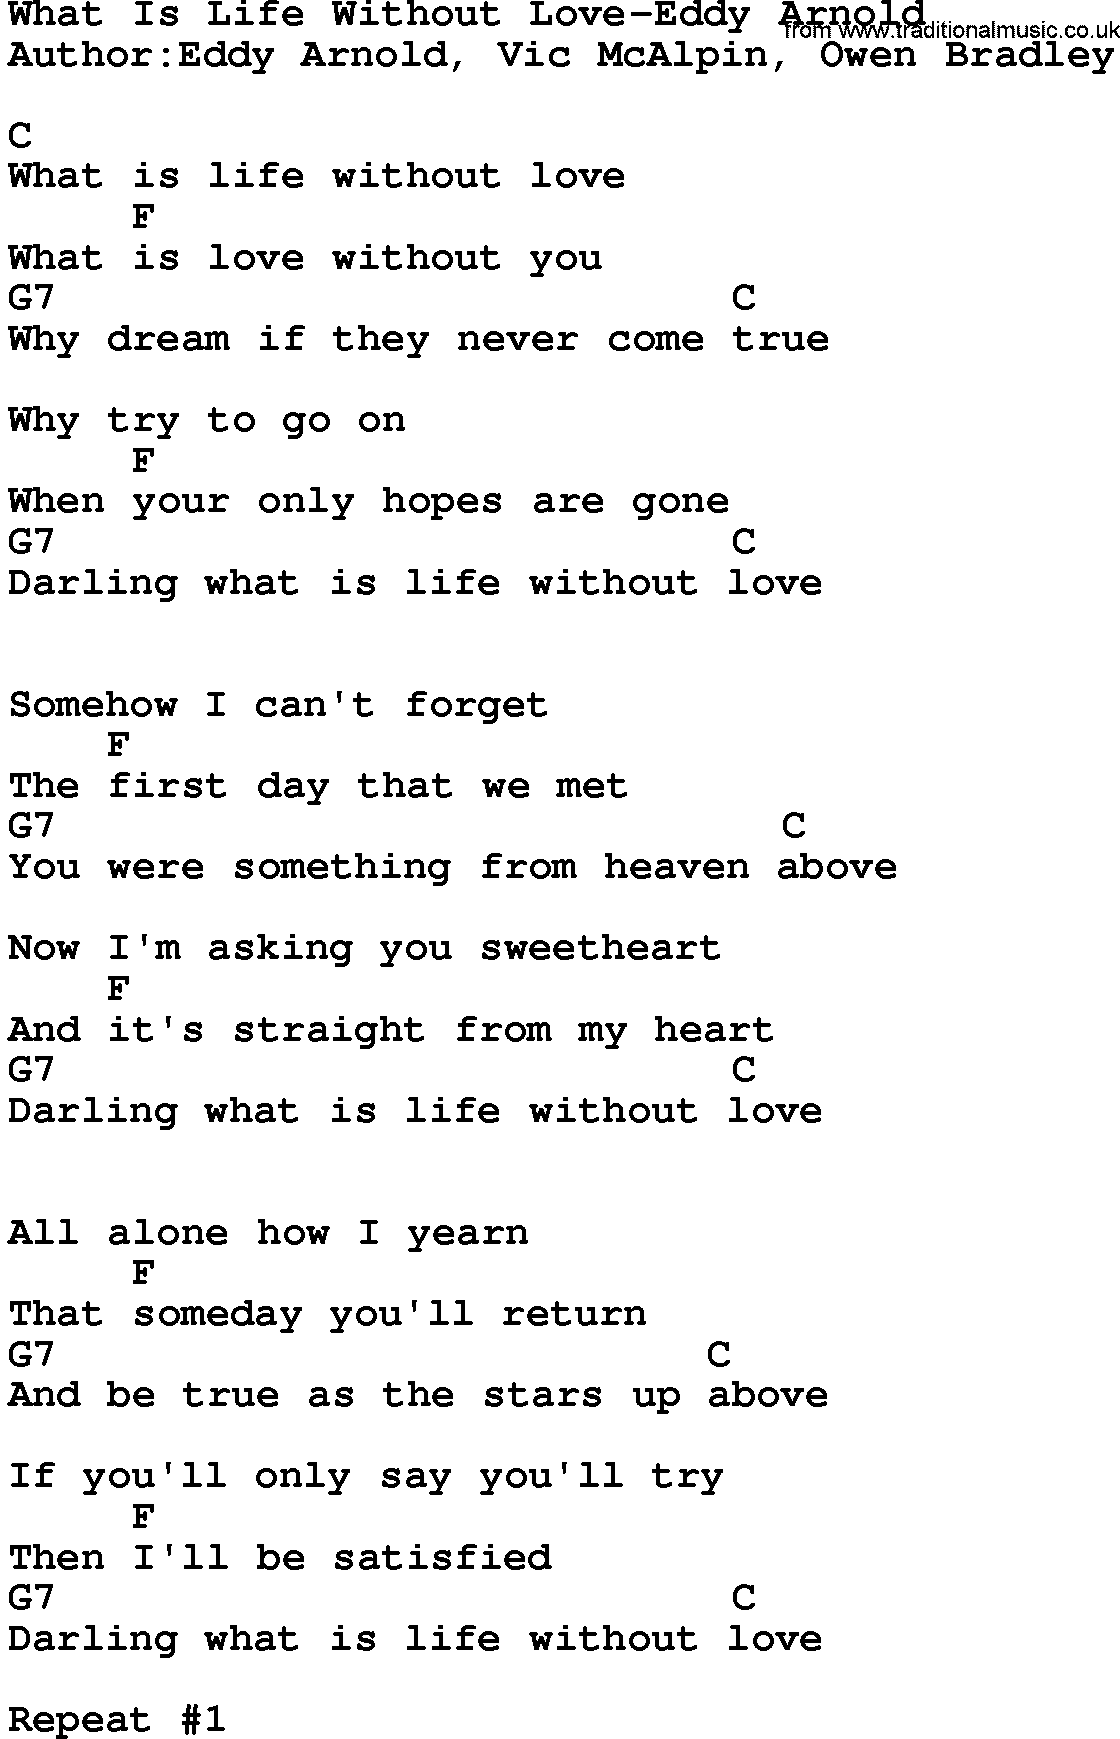 Country Musicwhat Is Life Without Love Eddy Arnold Lyrics And Chords